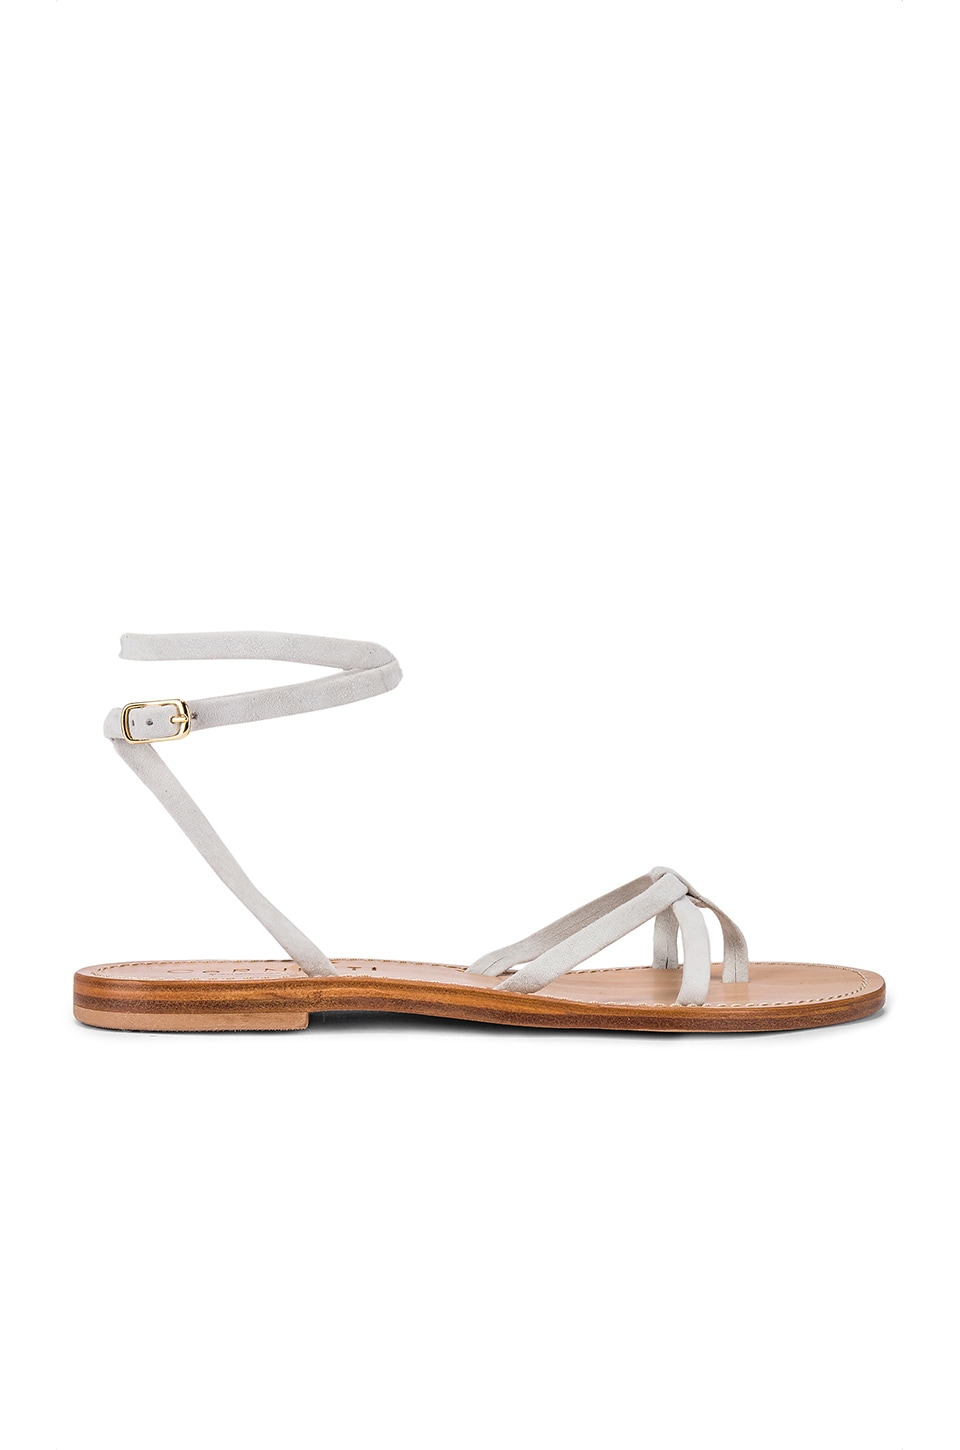 CoRNETTI Vulcanello Sandal in White